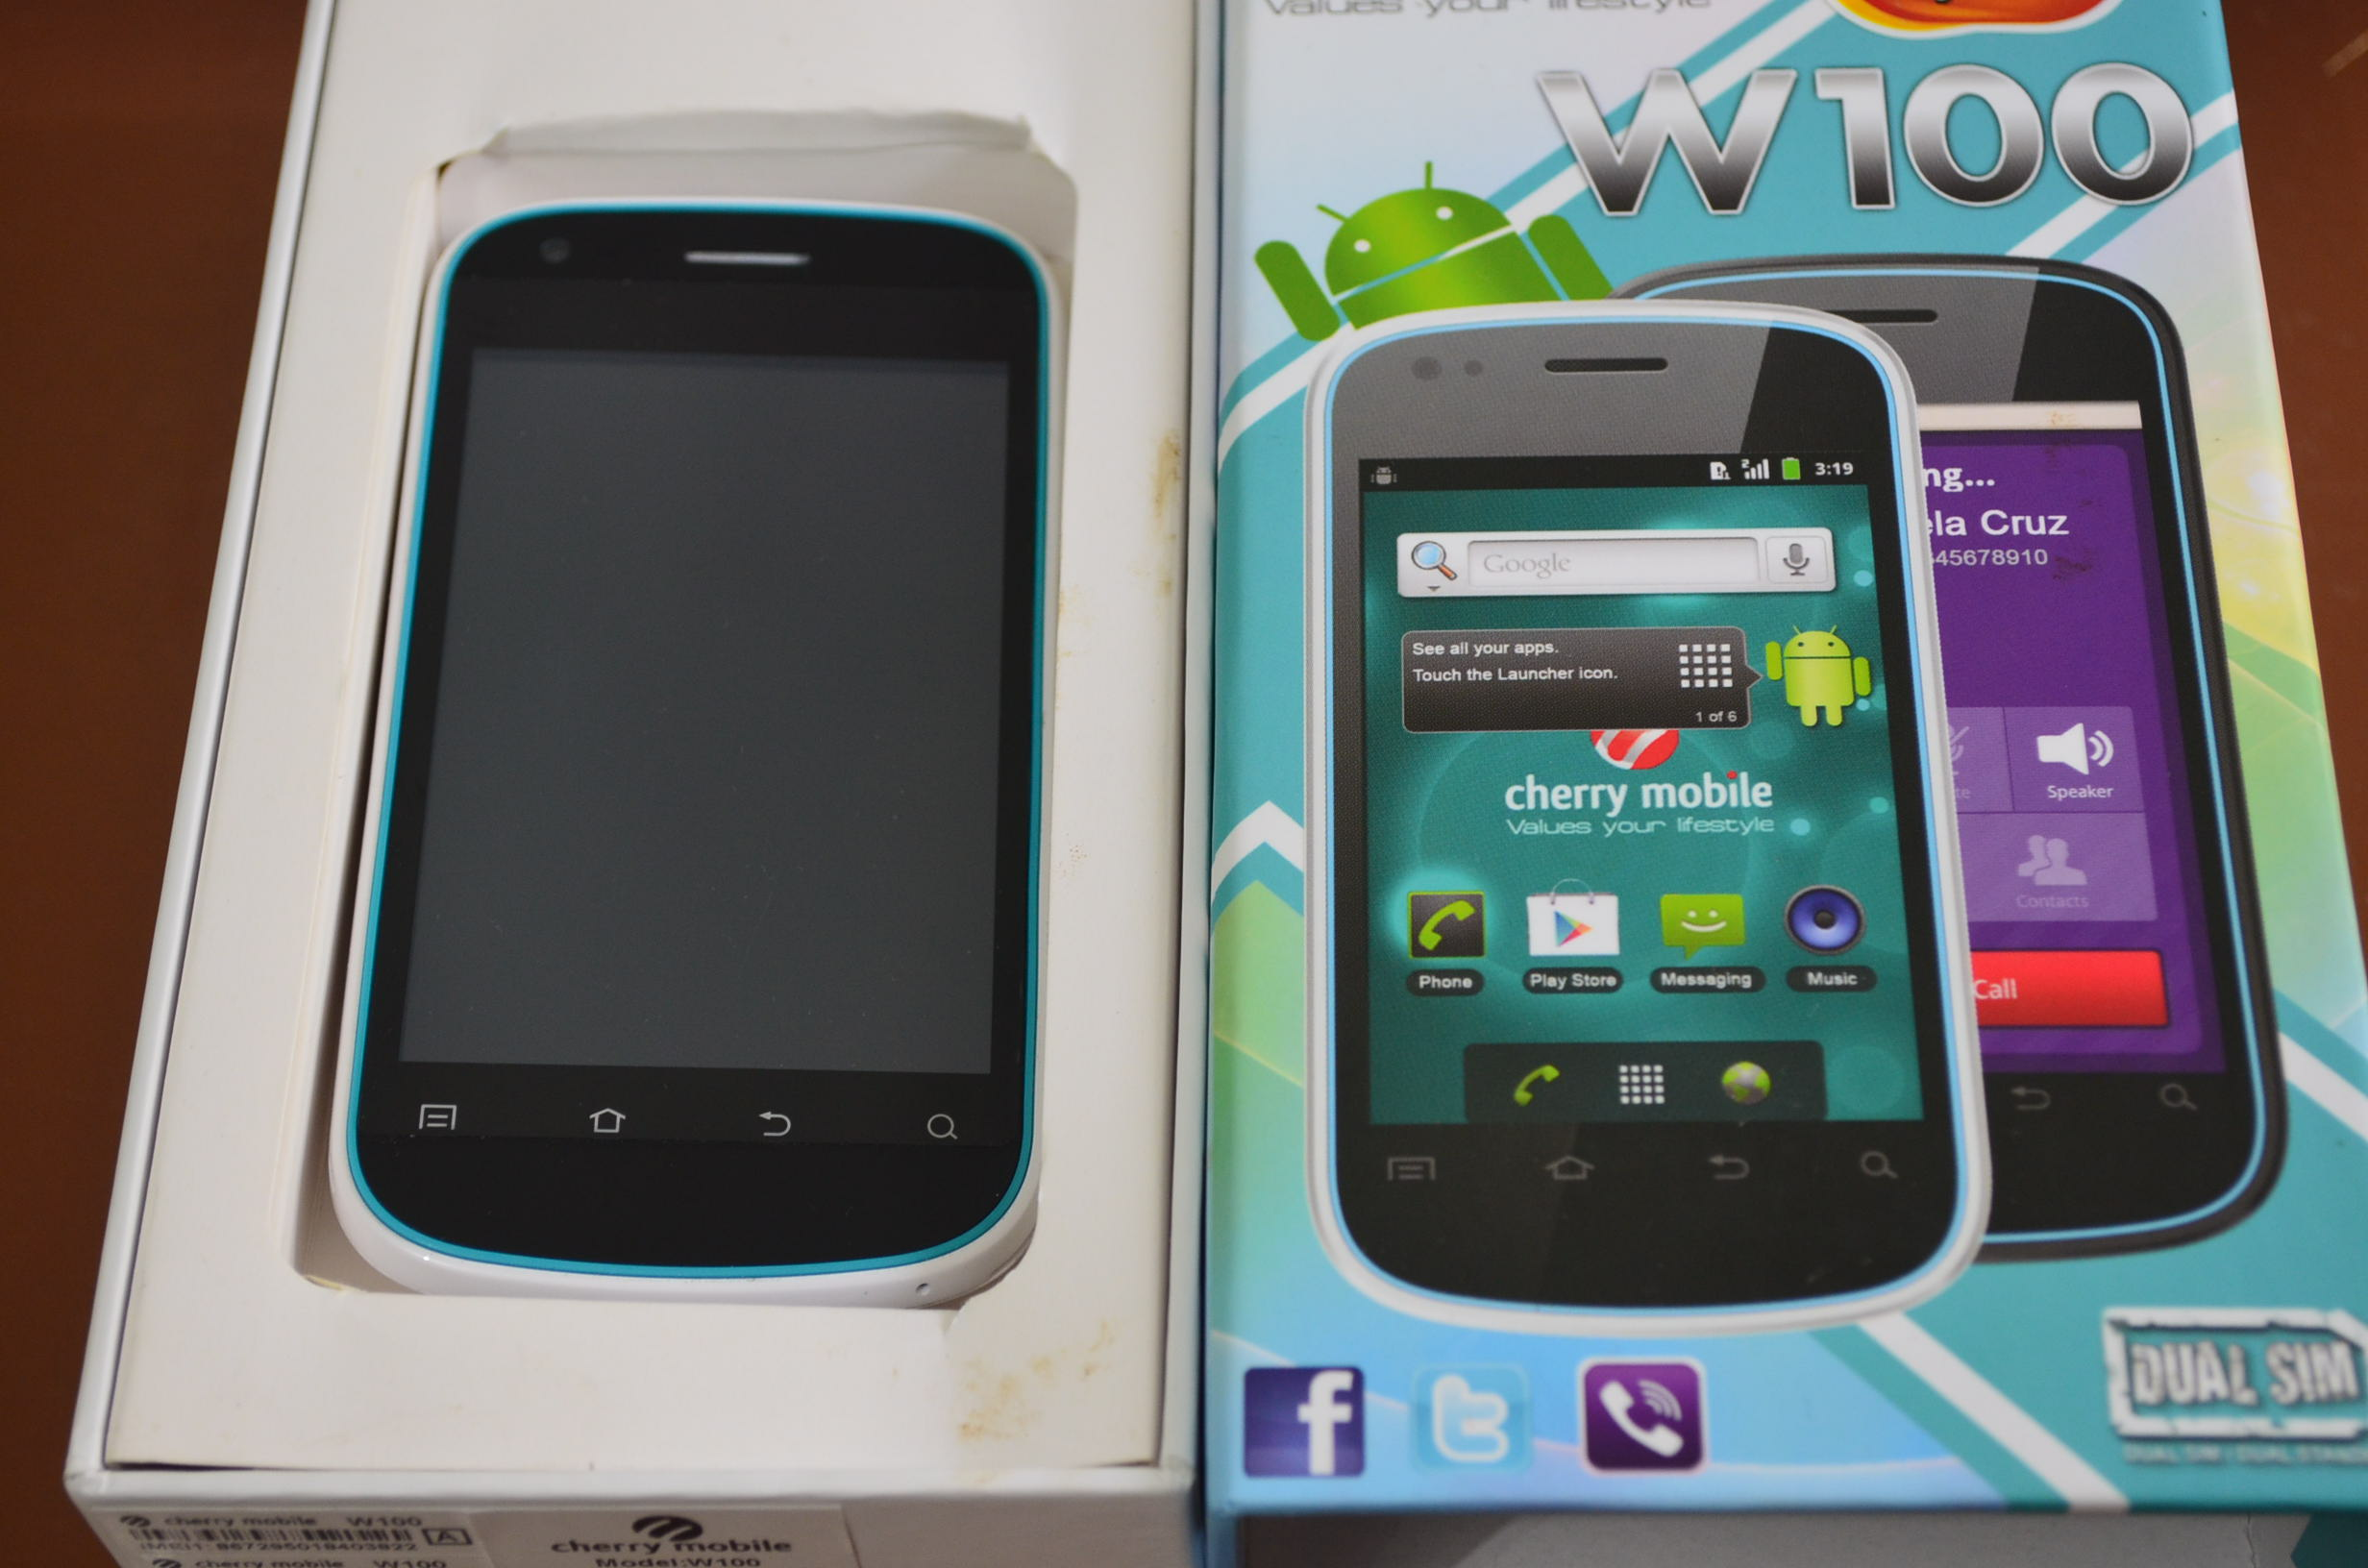 Cherry Mobile W100 Review: Awesome Budget Android That Only Cuts a Few ...